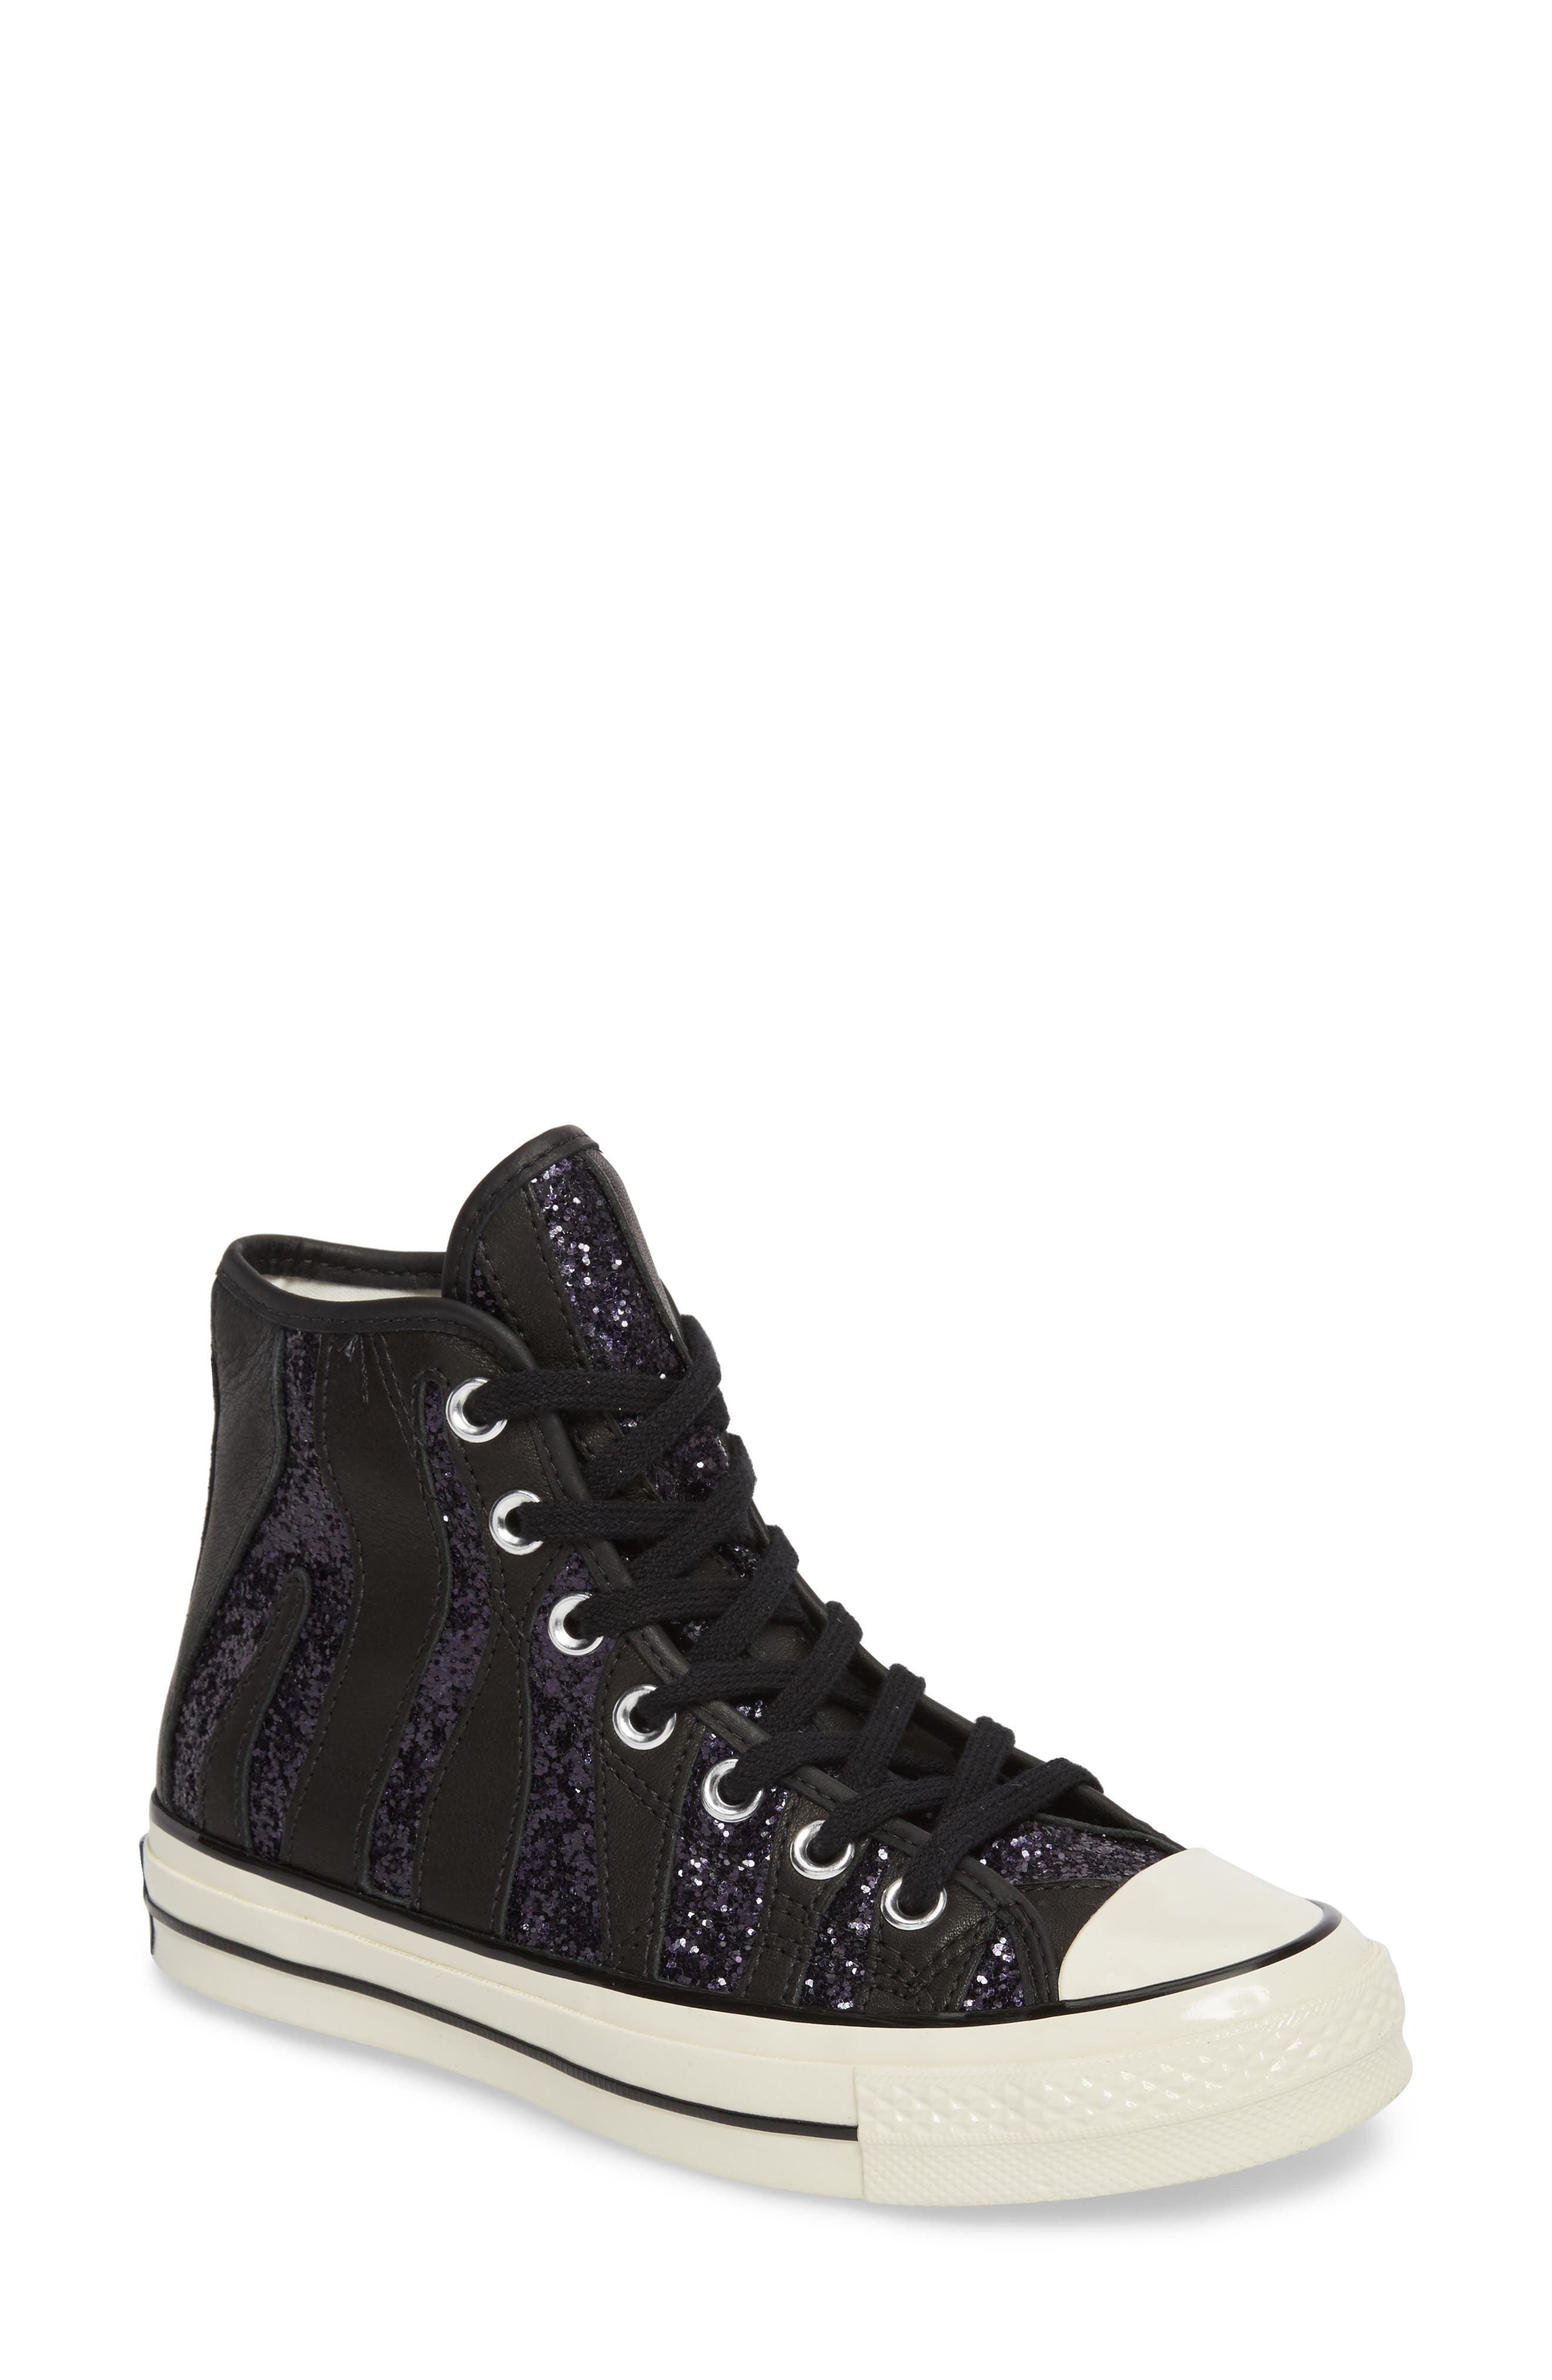 Chuck Taylor<sup>®</sup> All Star<sup>®</sup> 70 Animal Glitter High Top Sneaker,                             Main thumbnail 1, color,                             Black